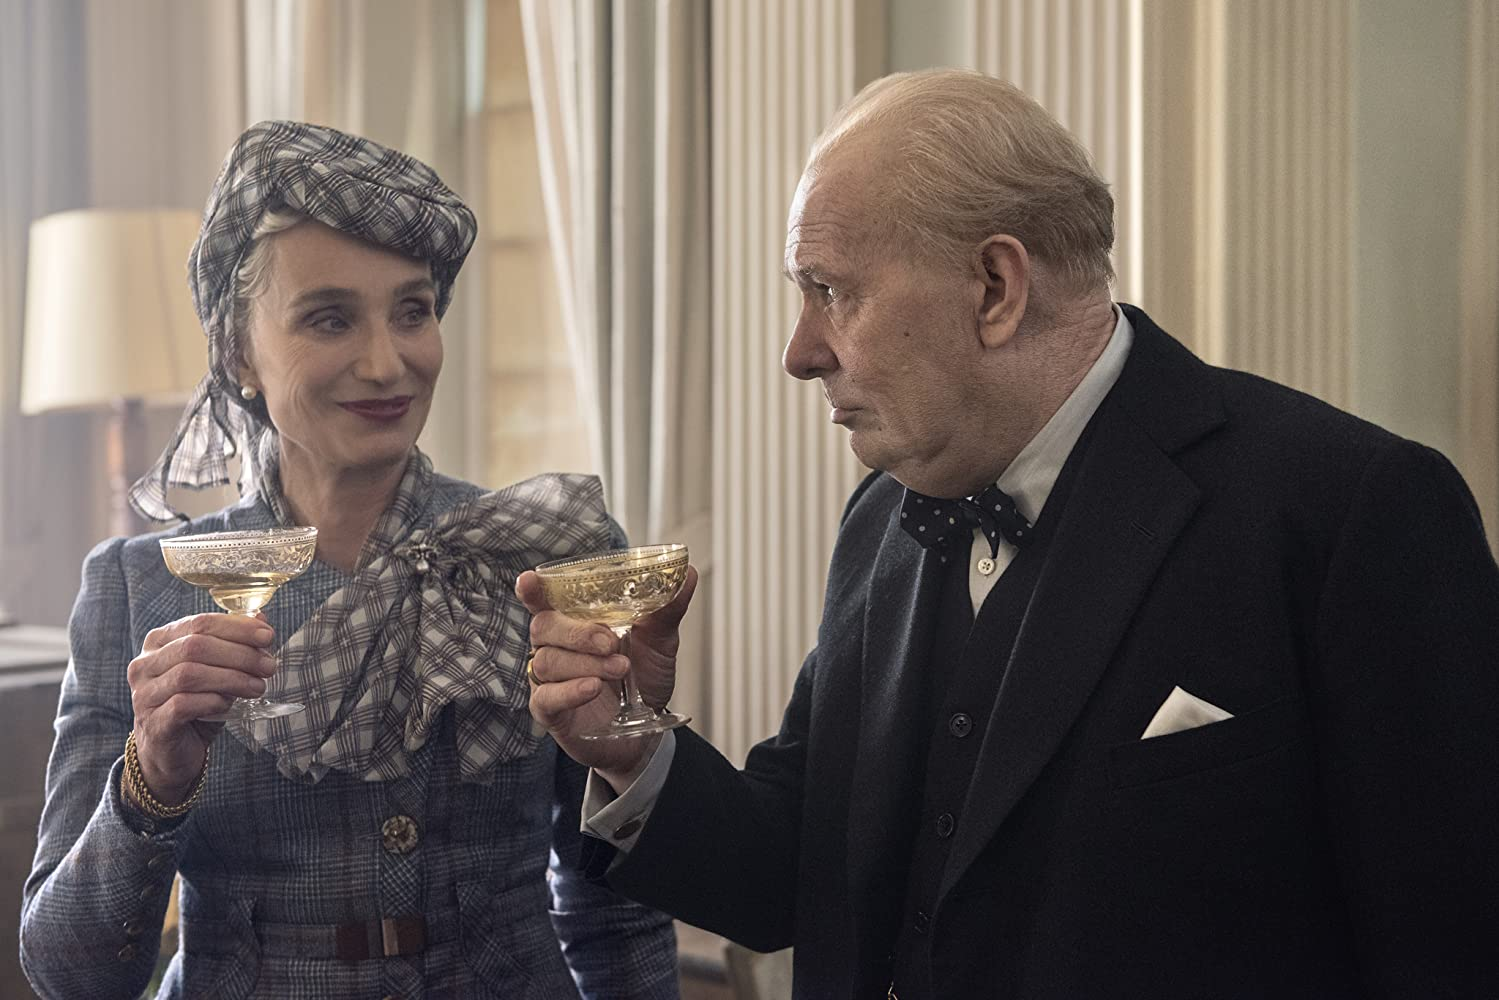 Gary Oldman and Kristin Scott Thomas in Darkest Hour (2017)